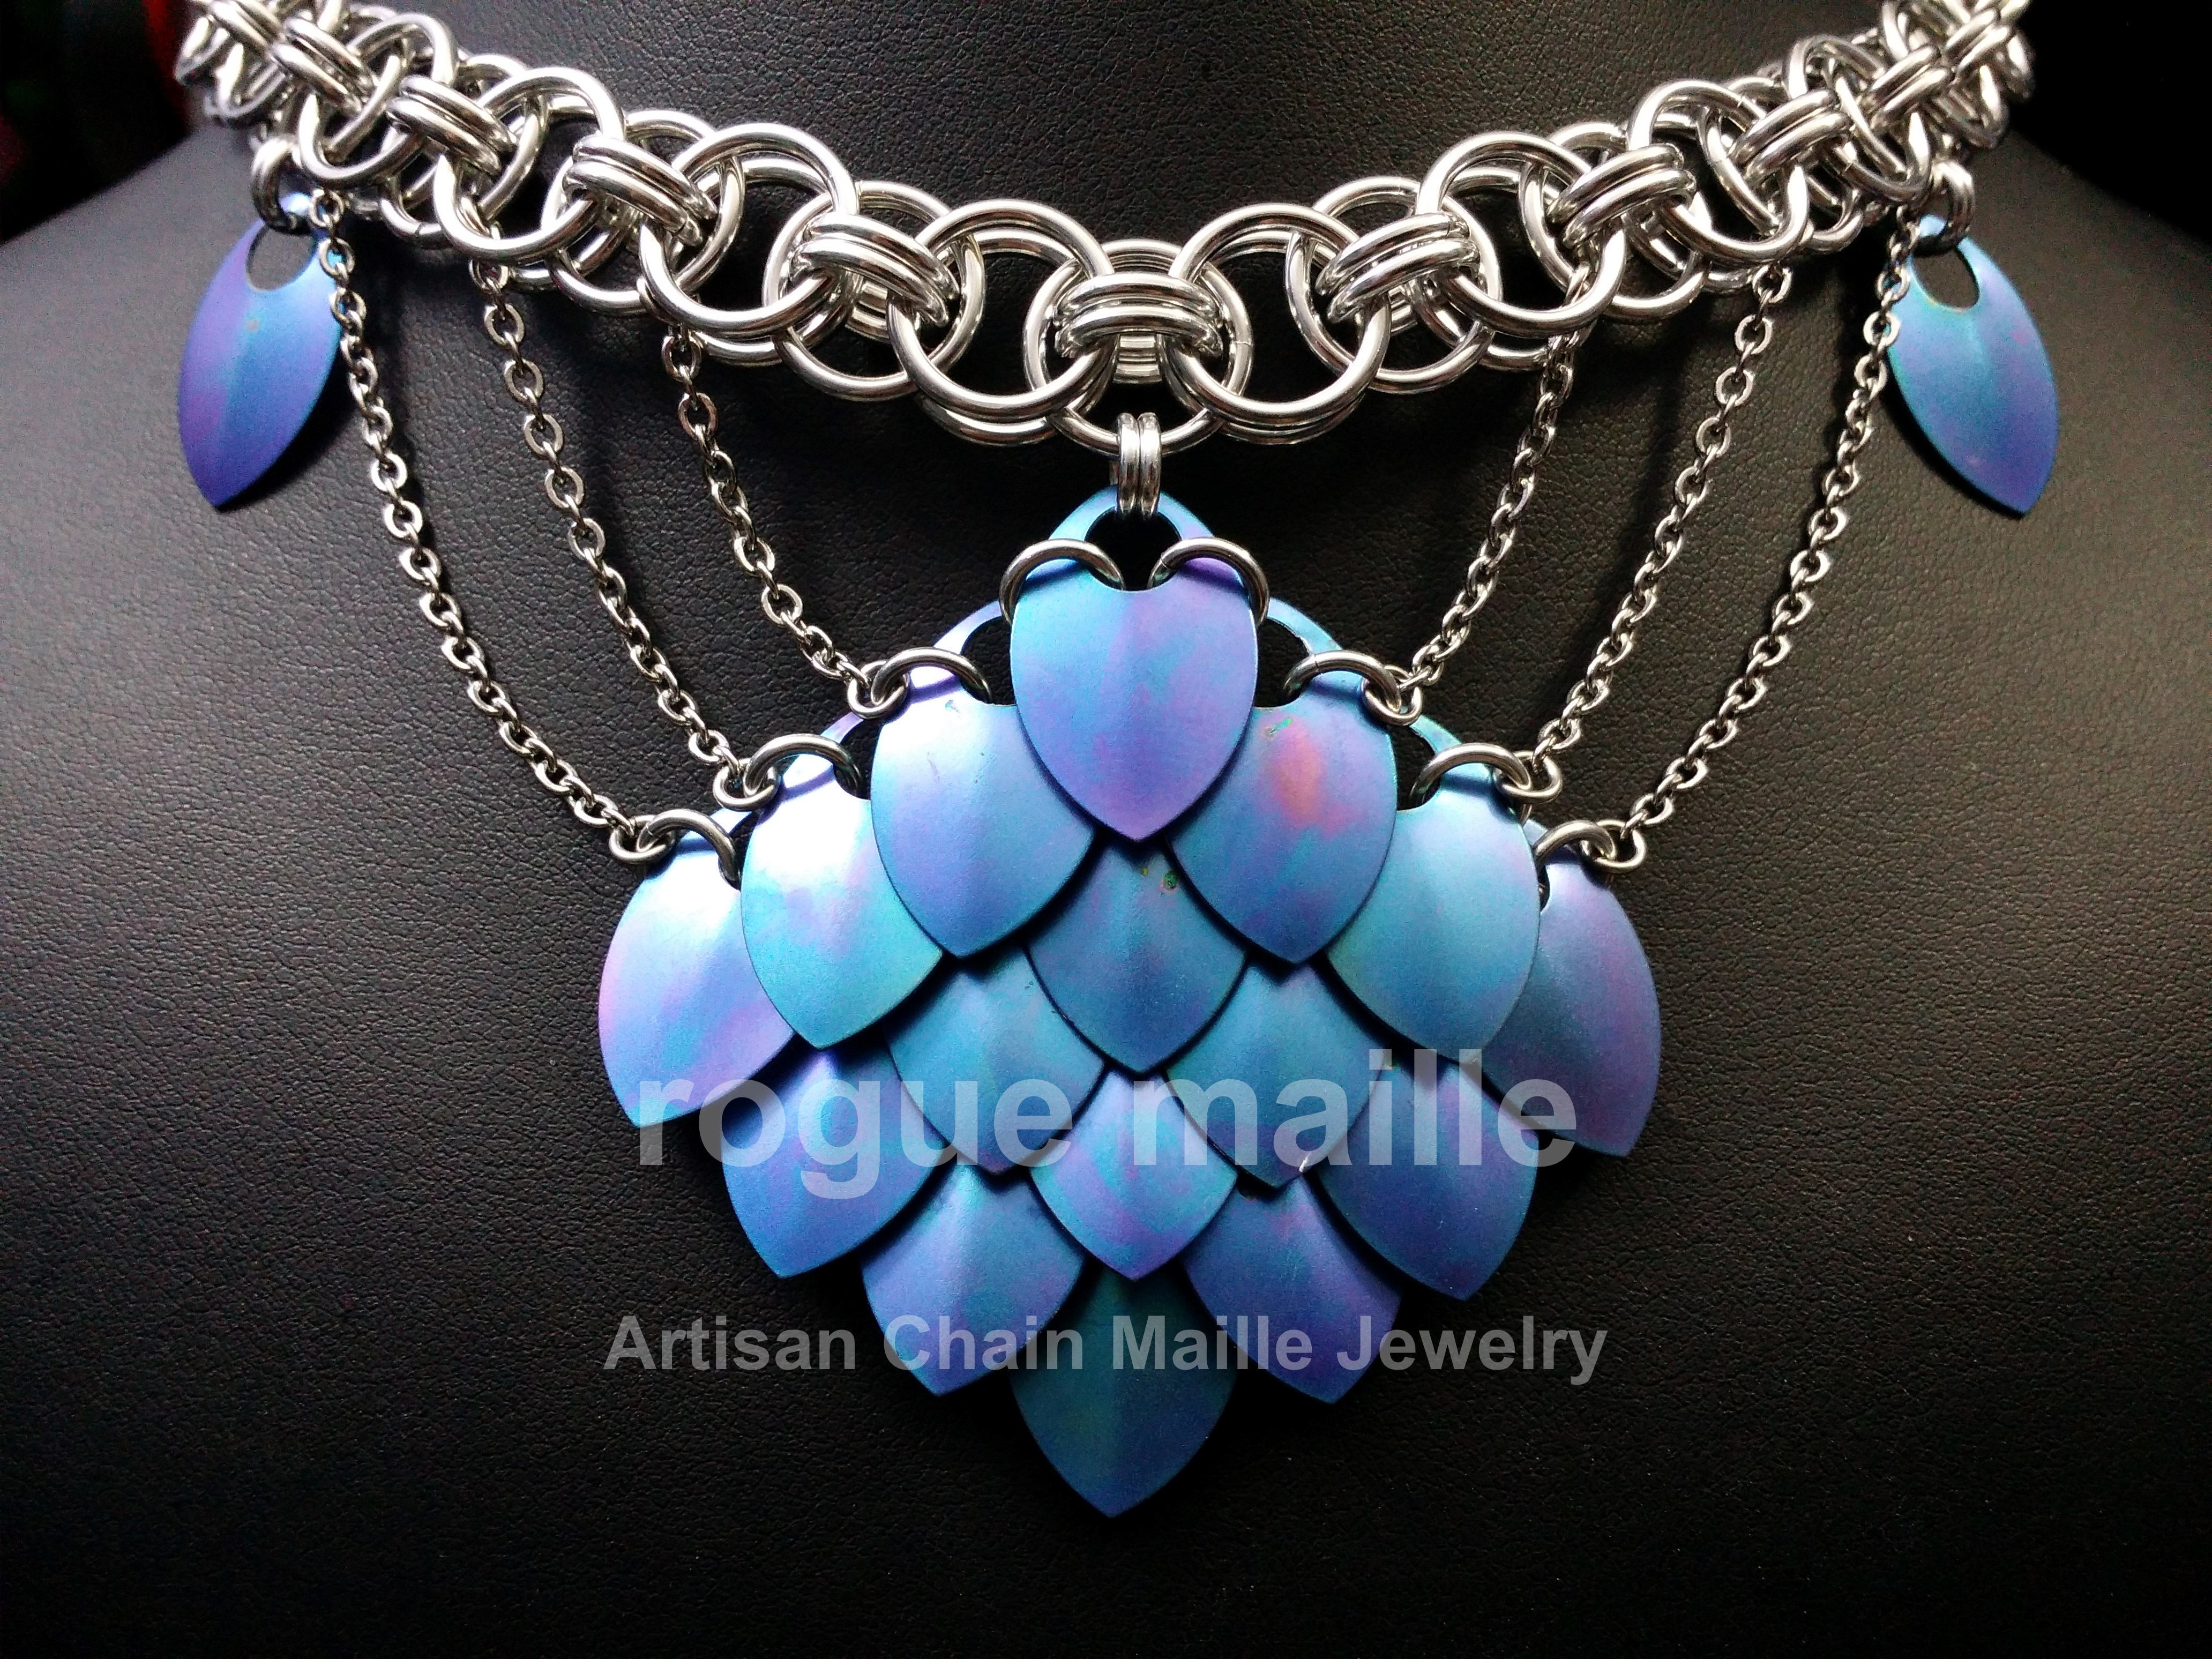 Chained Scales Necklace